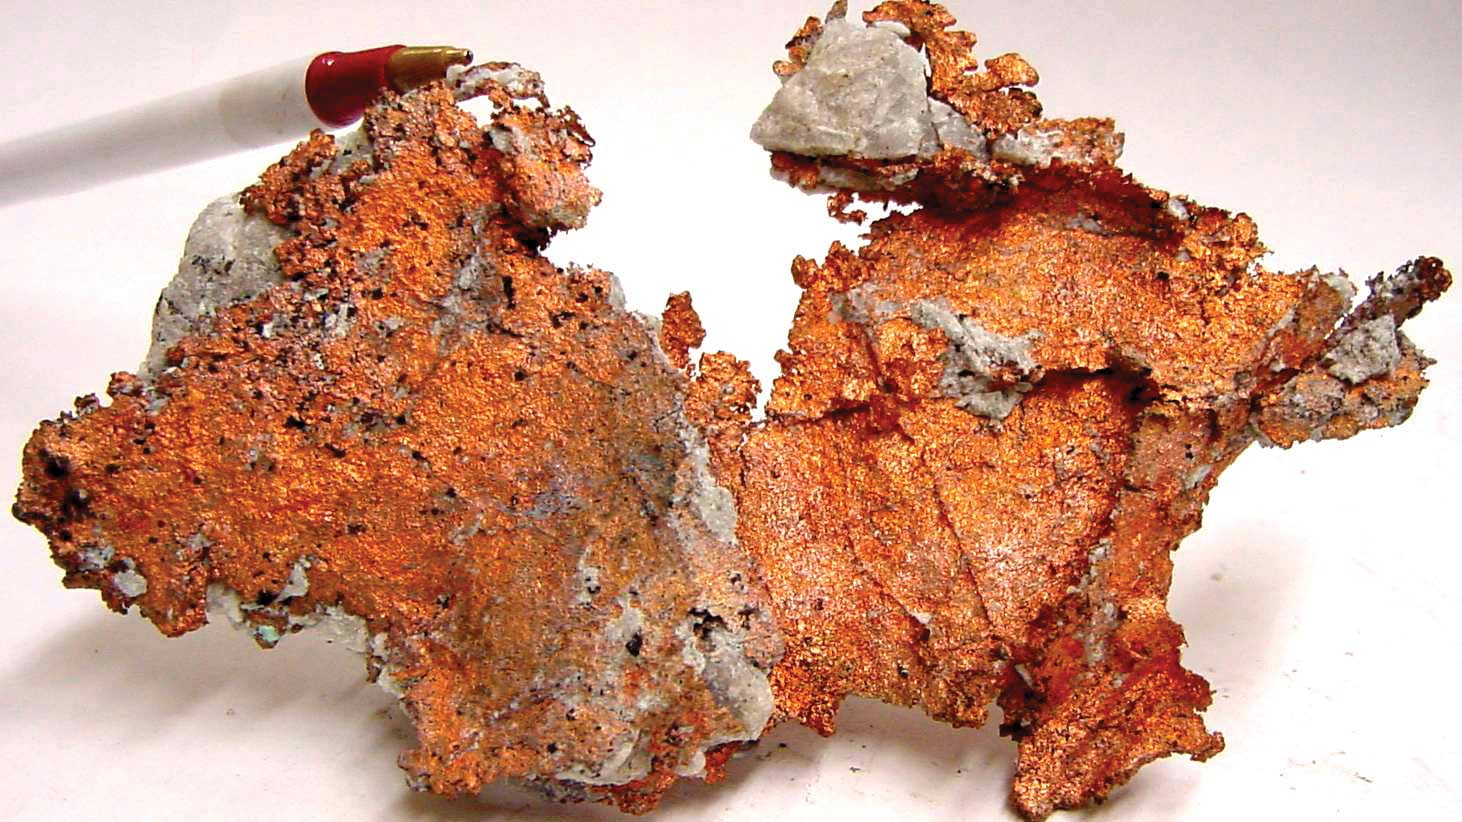 Copper is fairly abundant in Earth's crust; what sets Arizona apart is its wealth of mineable copper, which it owes to a copper-rich granite formed in ancient volcanoes.